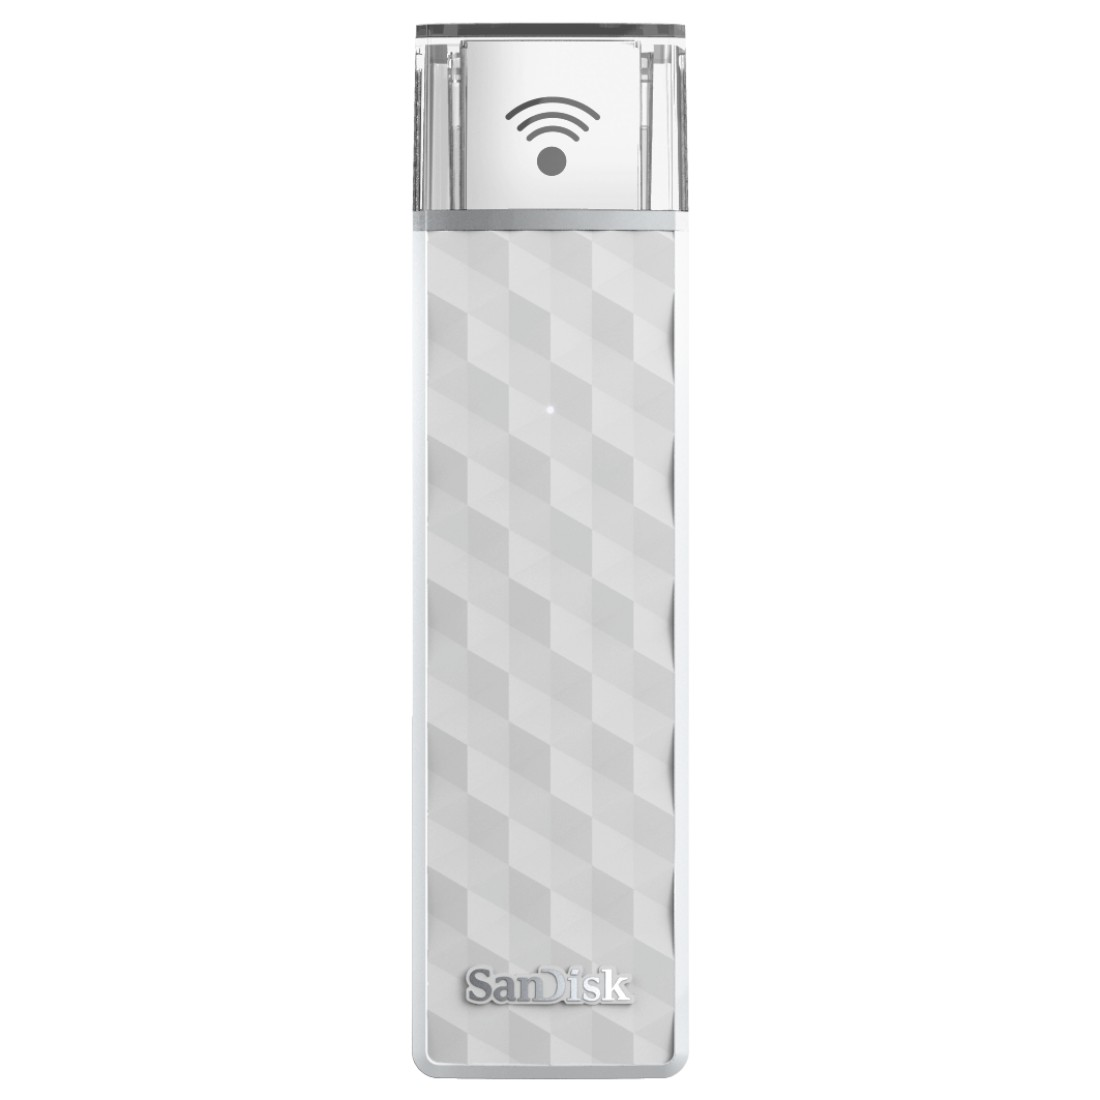 SanDisk Connect Wireless Stick 200GB bílá